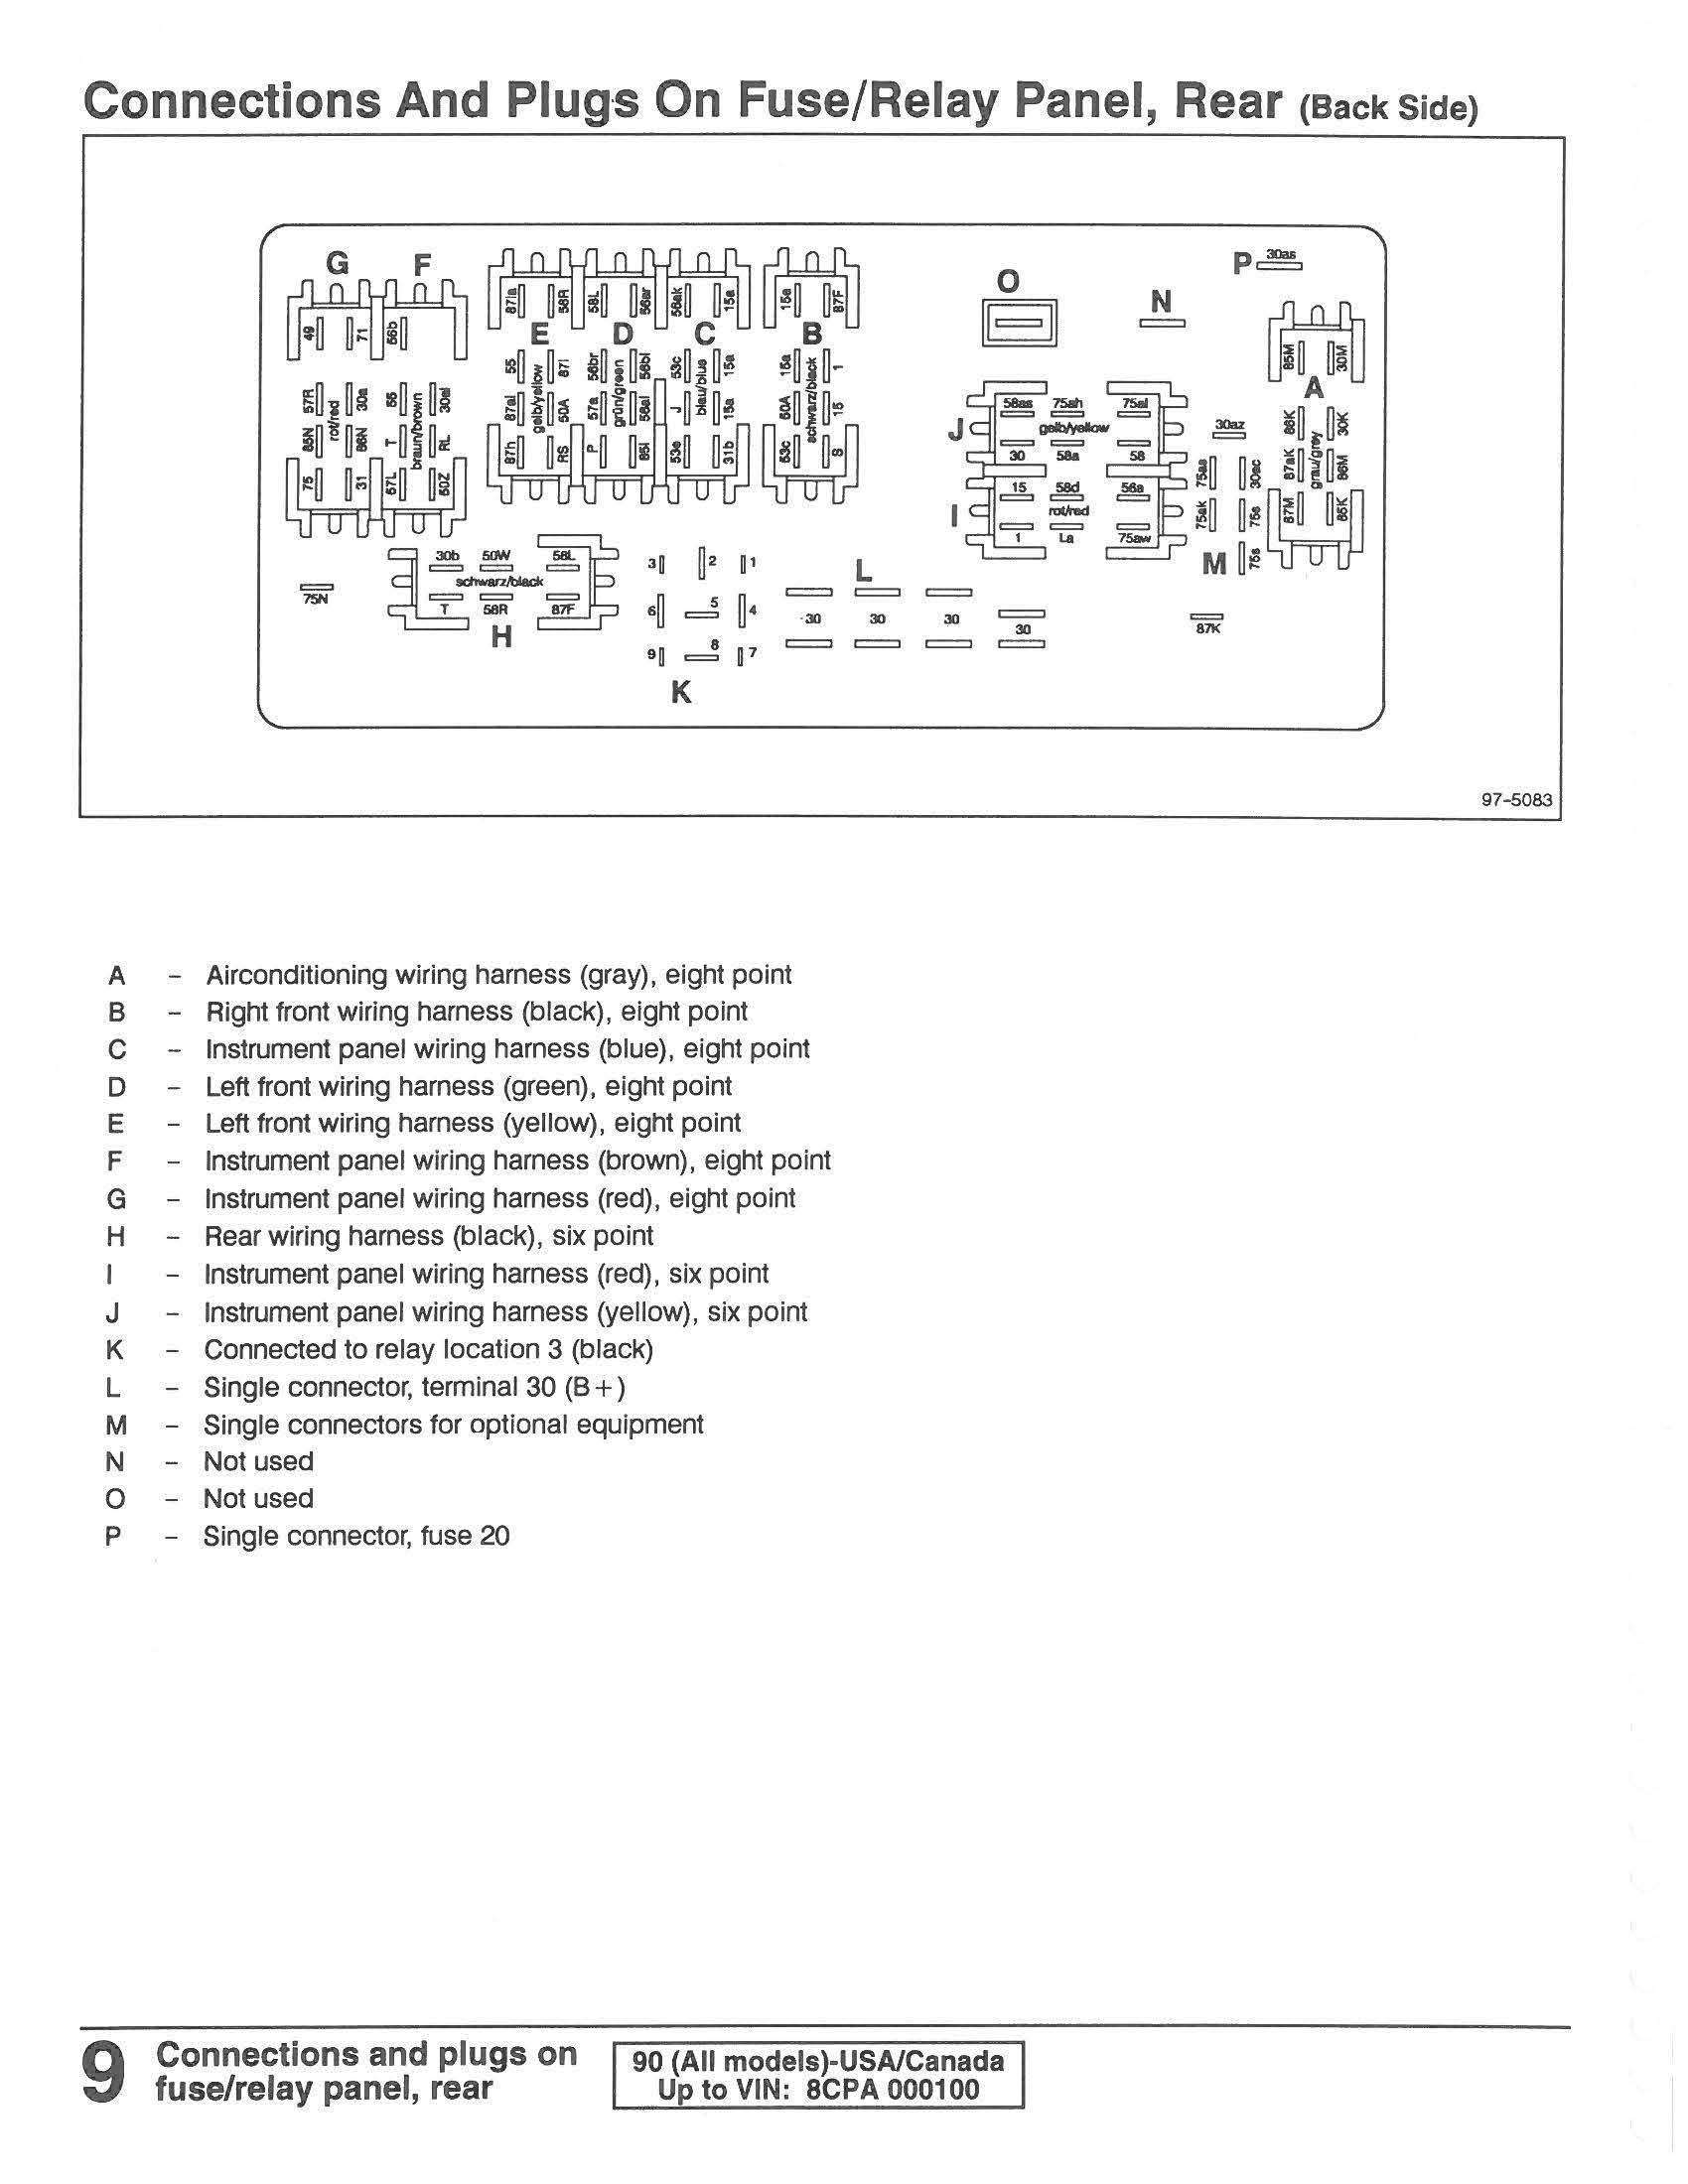 hight resolution of name pagesfromaudi90electricalwiringdiagrams1993usaampcanada zps4121aa76 jpg views 205 size 202 8 kb fuse panel pic or image